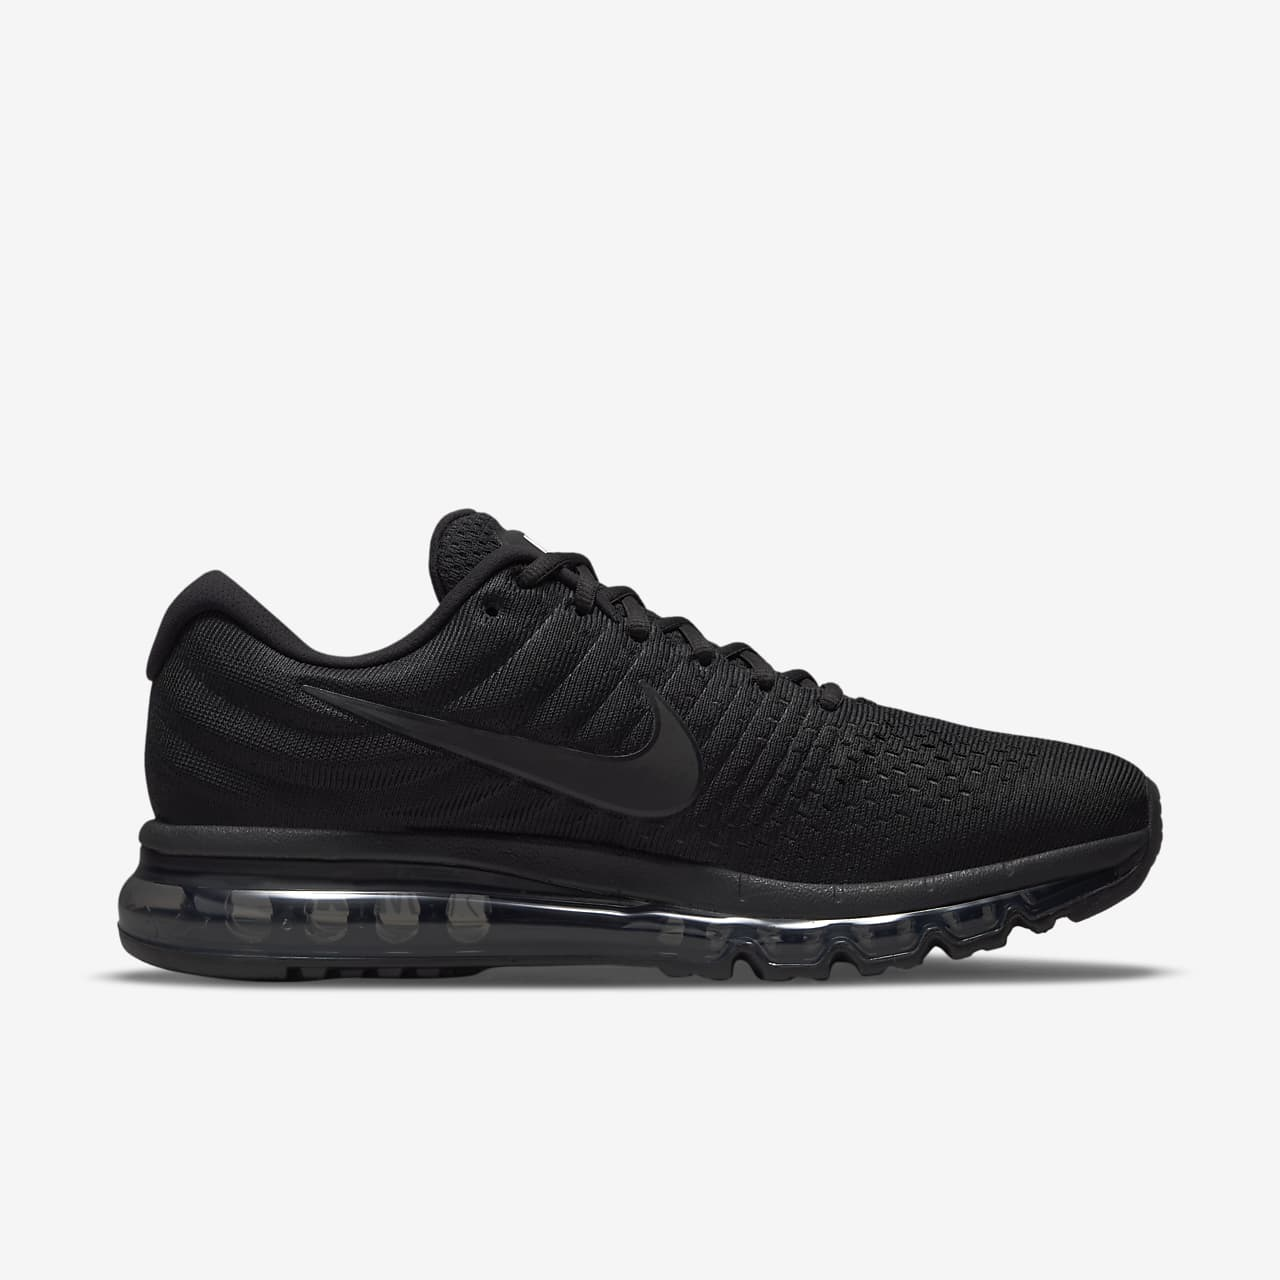 nike air max flyknit 2017 men's nz